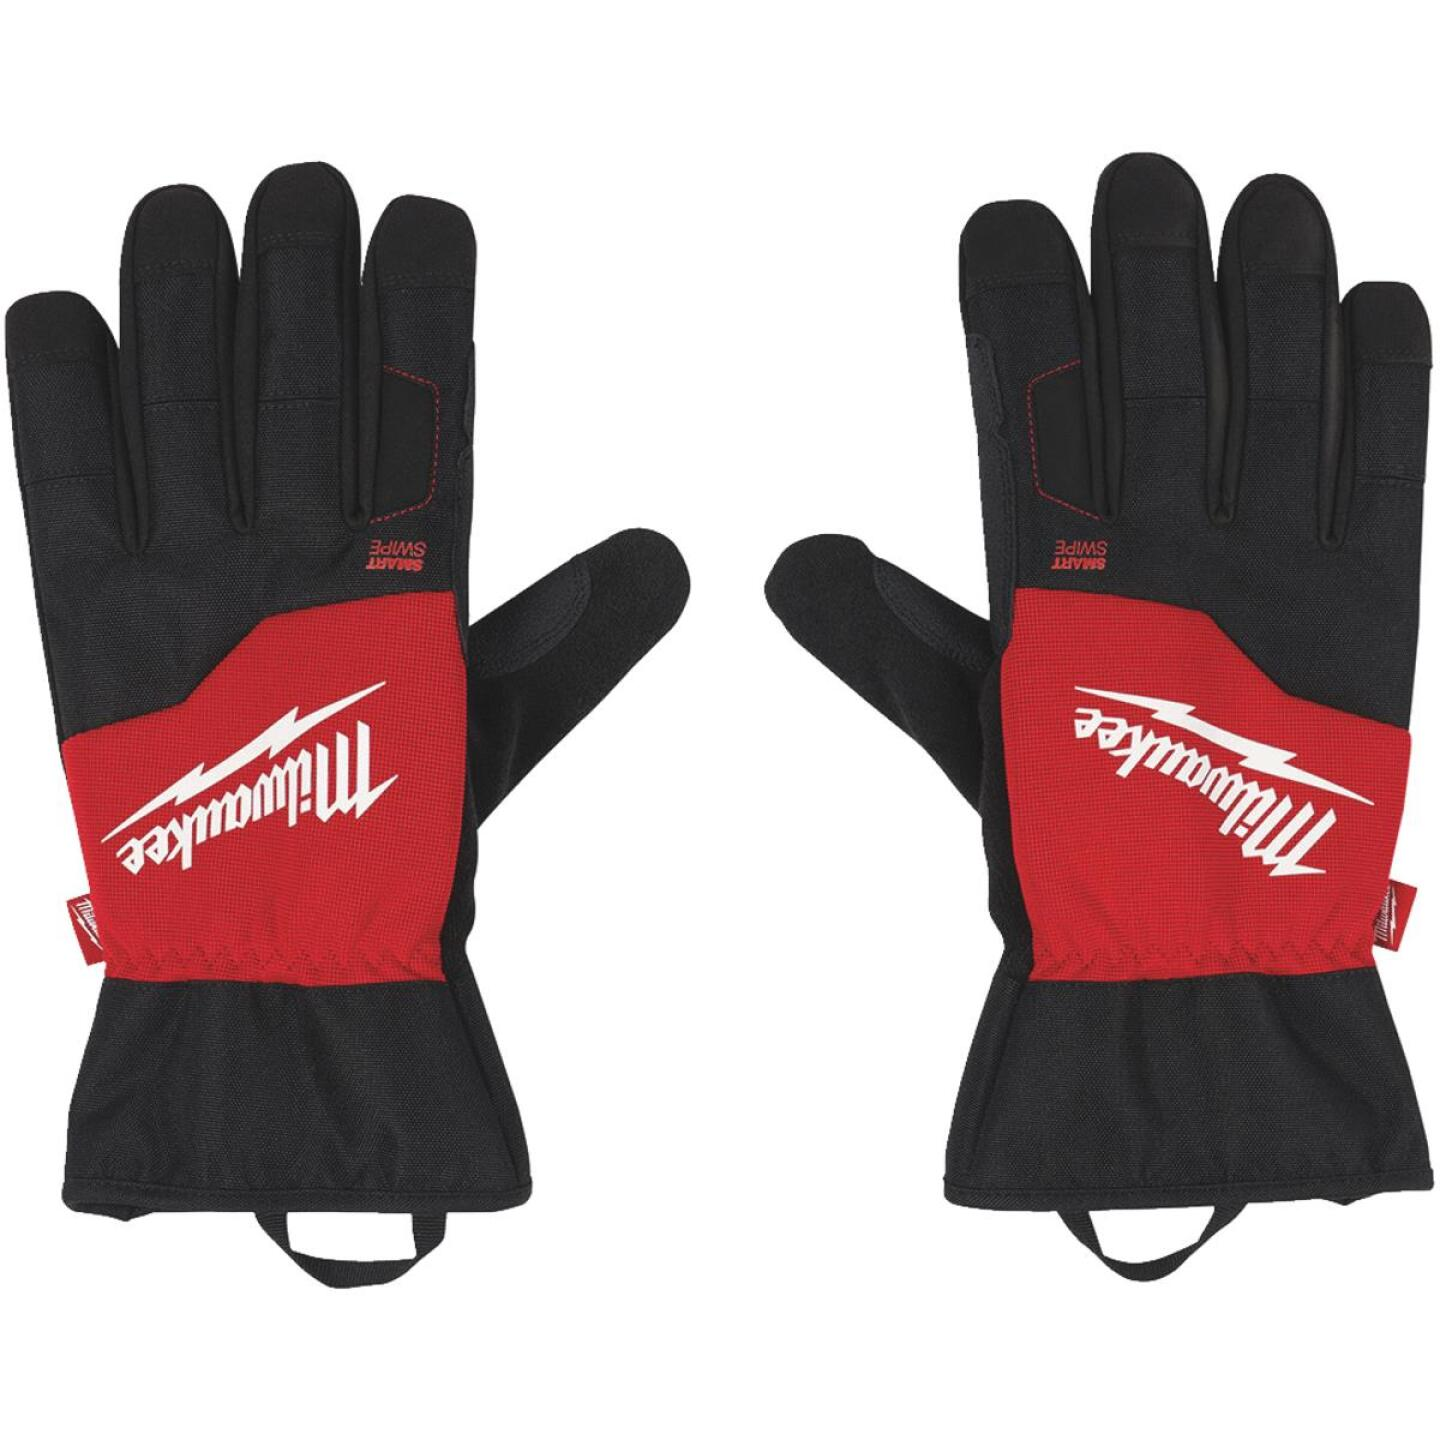 Milwaukee Men's Large Synthetic Winter Performance Glove Image 2